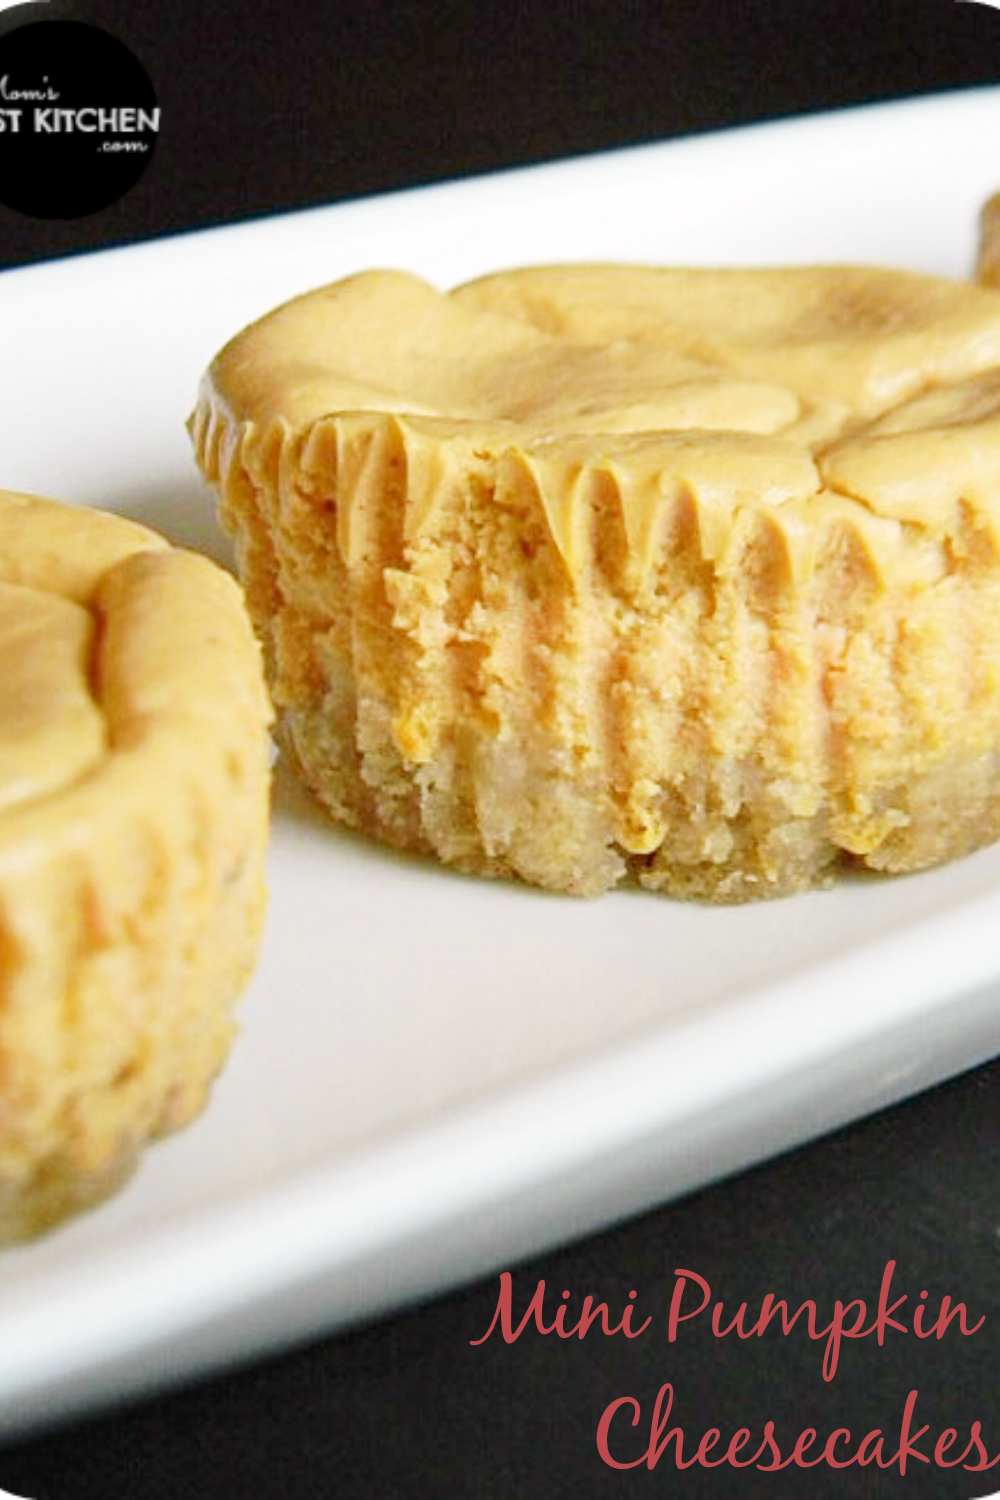 This easy Mini Pumpkin Cheesecake recipe makes a smooth and creamy cheesecake full of Fall flavors, all put on top of an easy crust made from frozen waffles! It makes for the perfect holiday dessert!